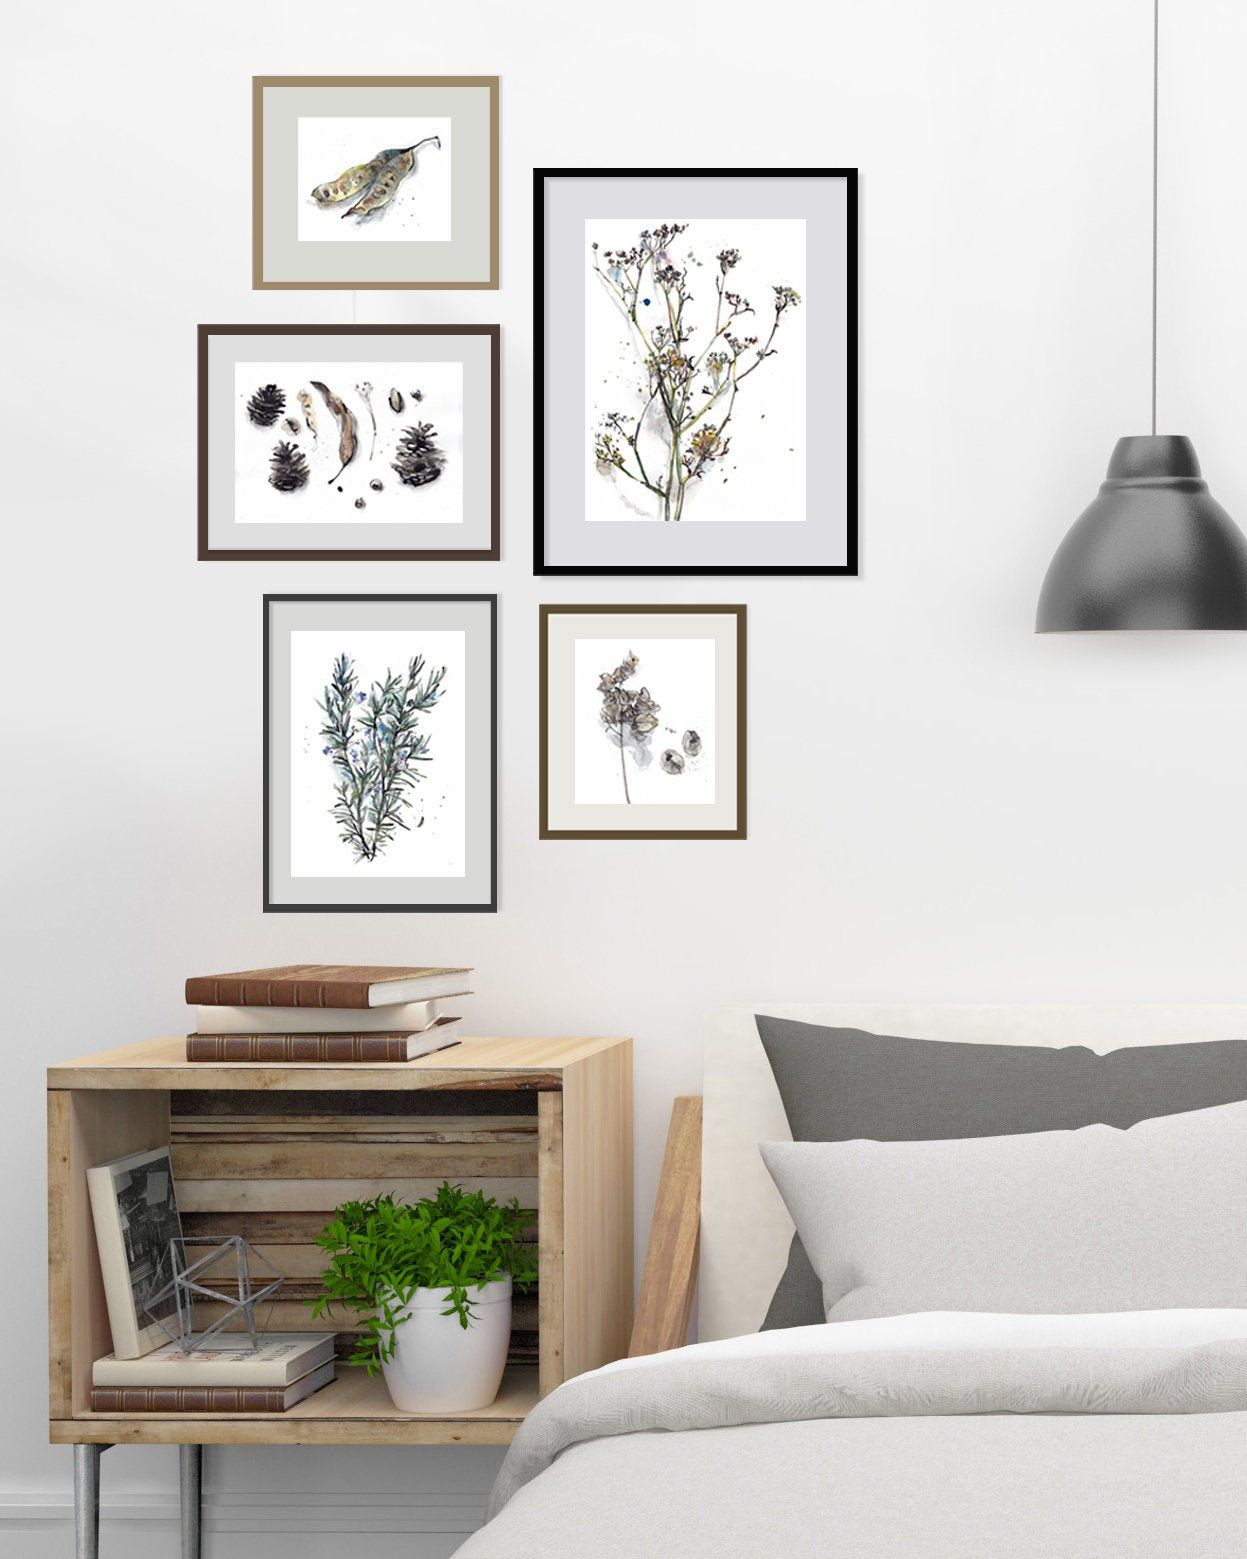 Dining Room Wall Set Of 5 Nature Art Prints In Beige And Green Etsy In 2020 Gallery Wall Bedroom Wall Decor Bedroom Gallery Wall